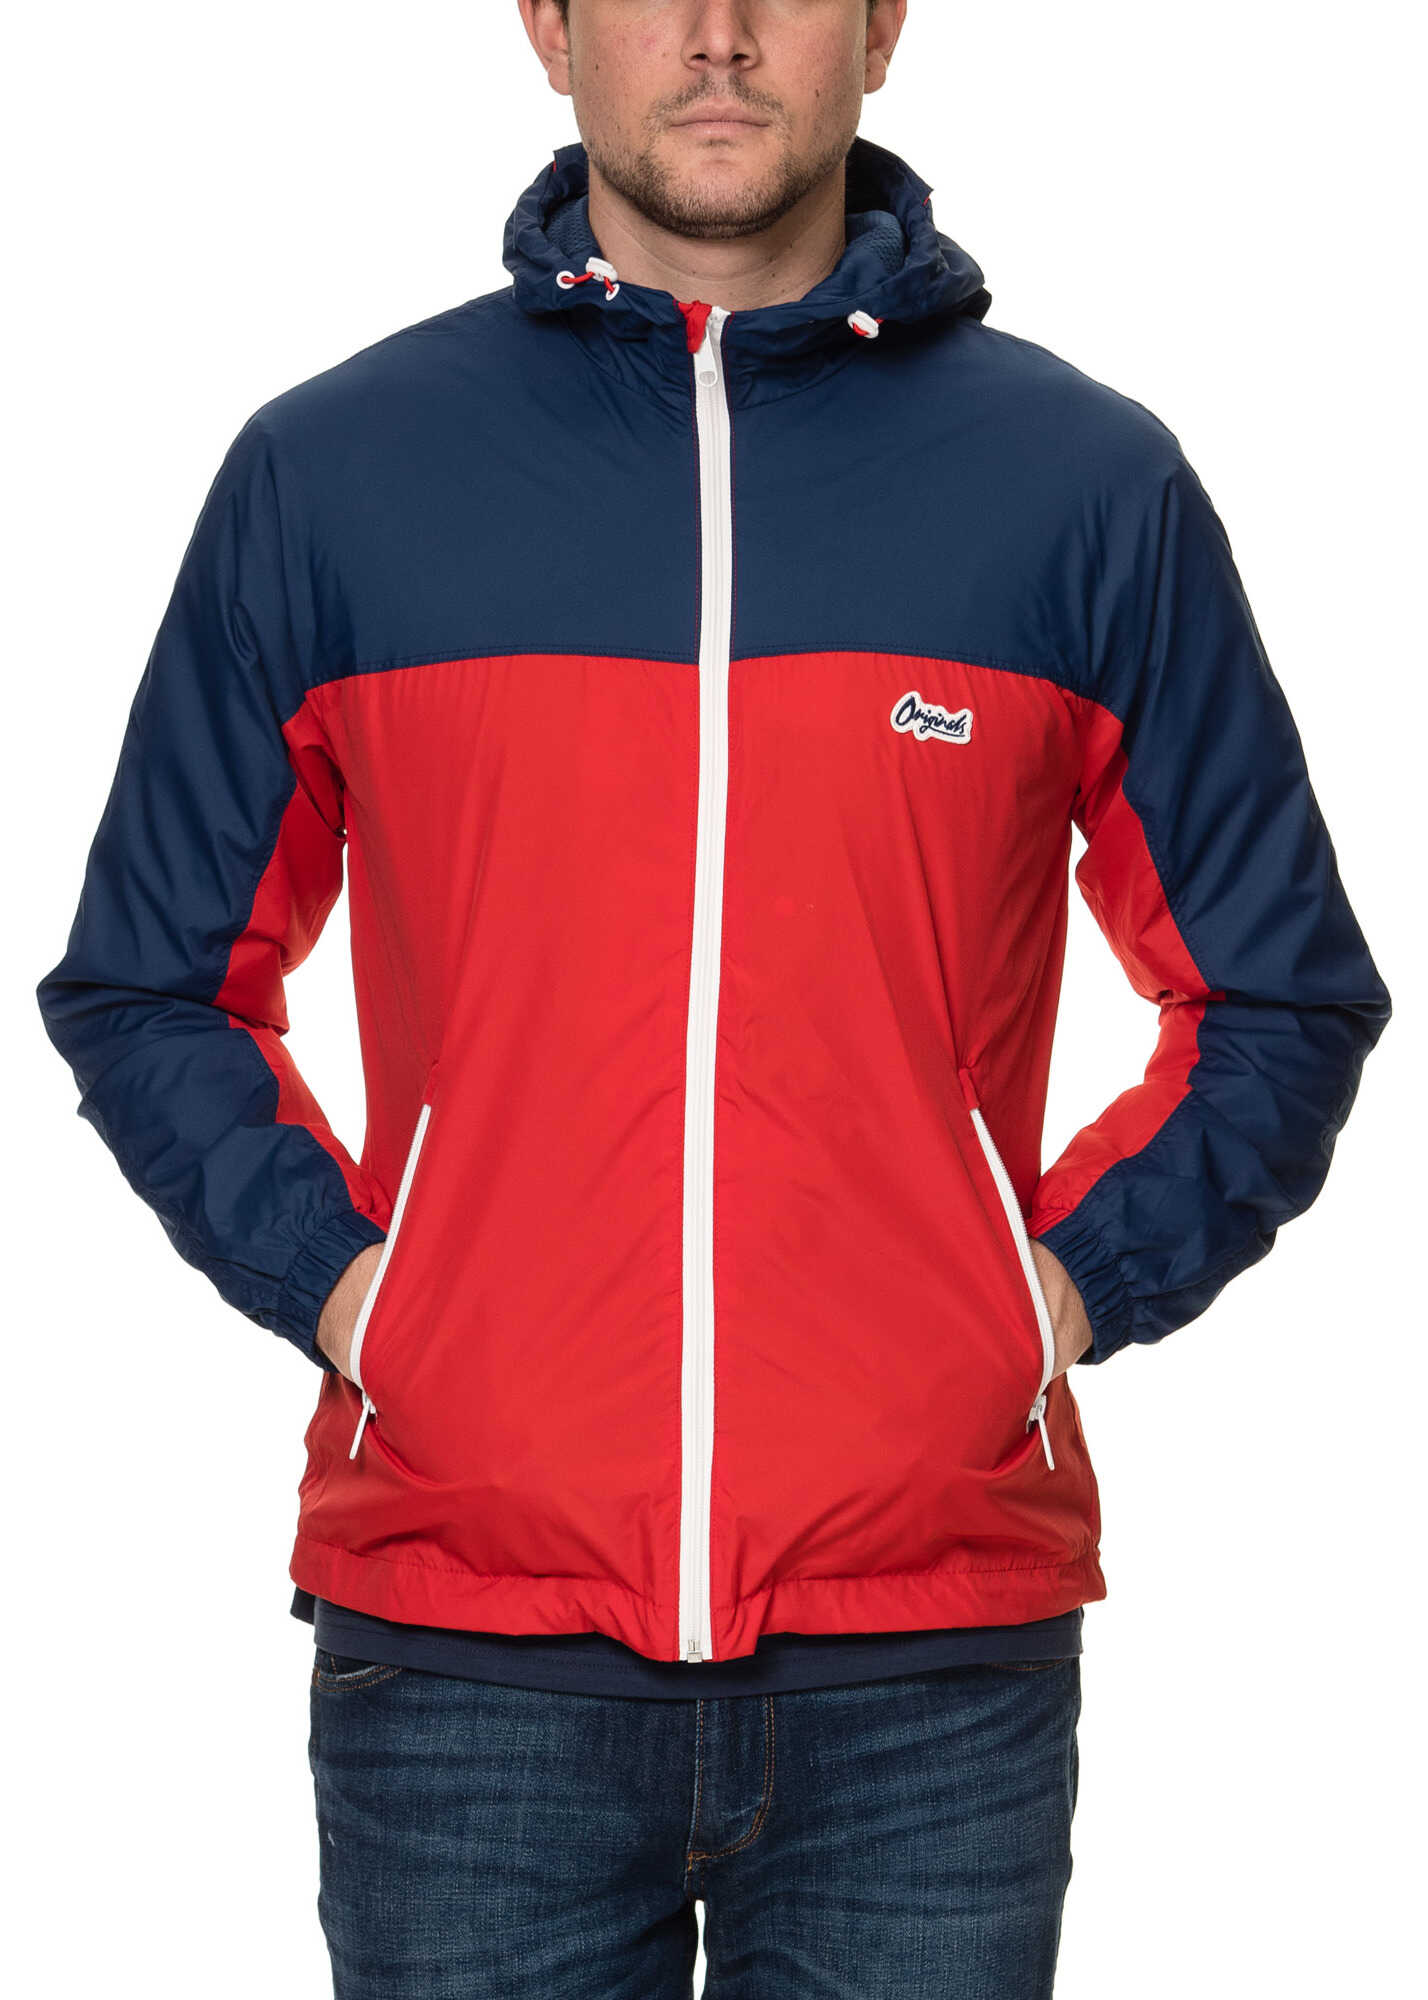 JACK & JONES Retro Men's Red Jacket Scarlet